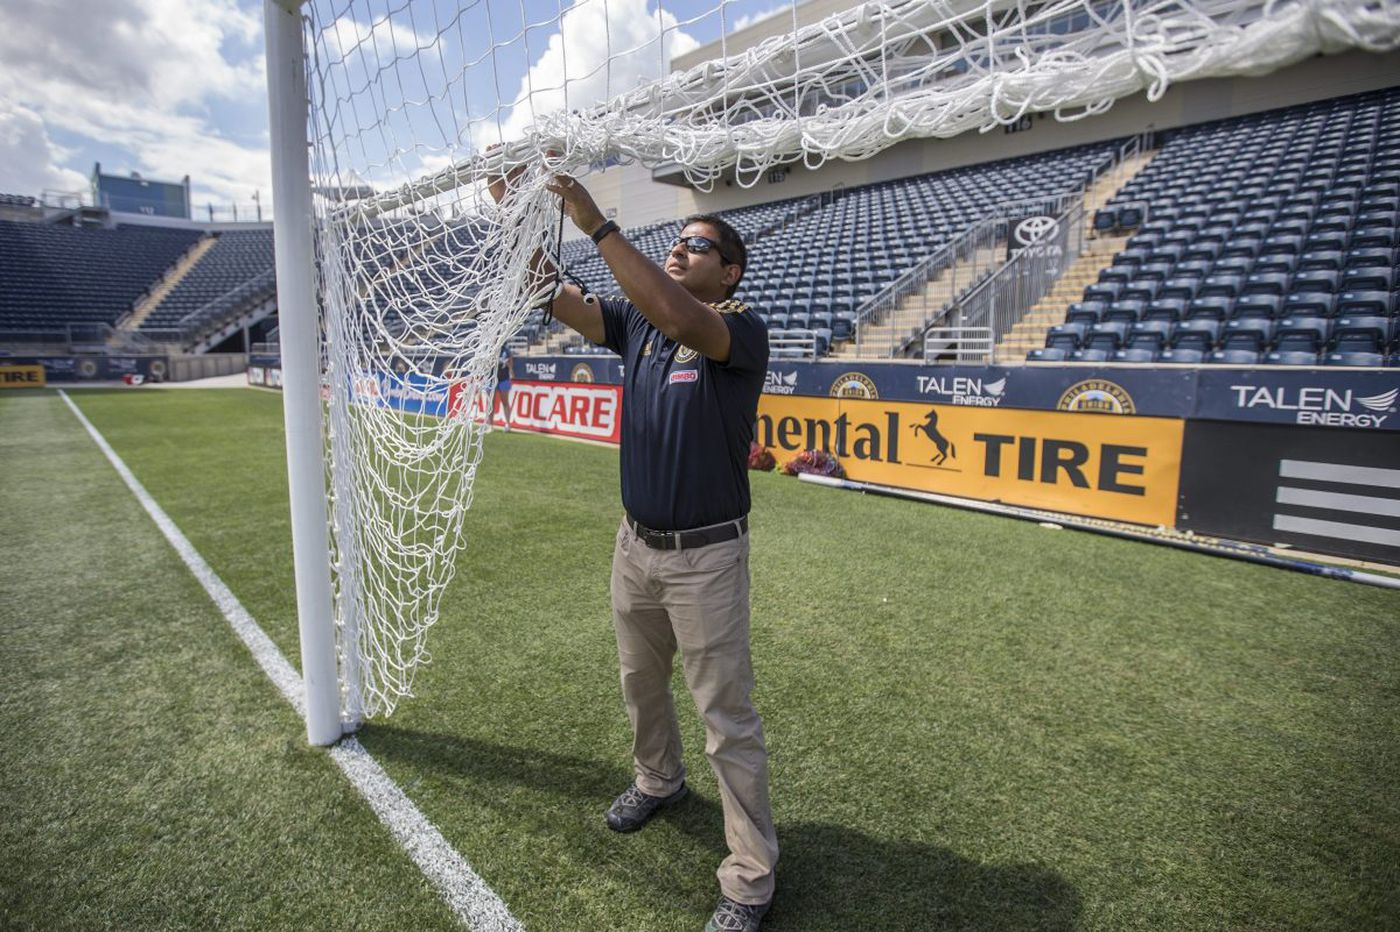 For Union groundskeeper, field is reflection of passion